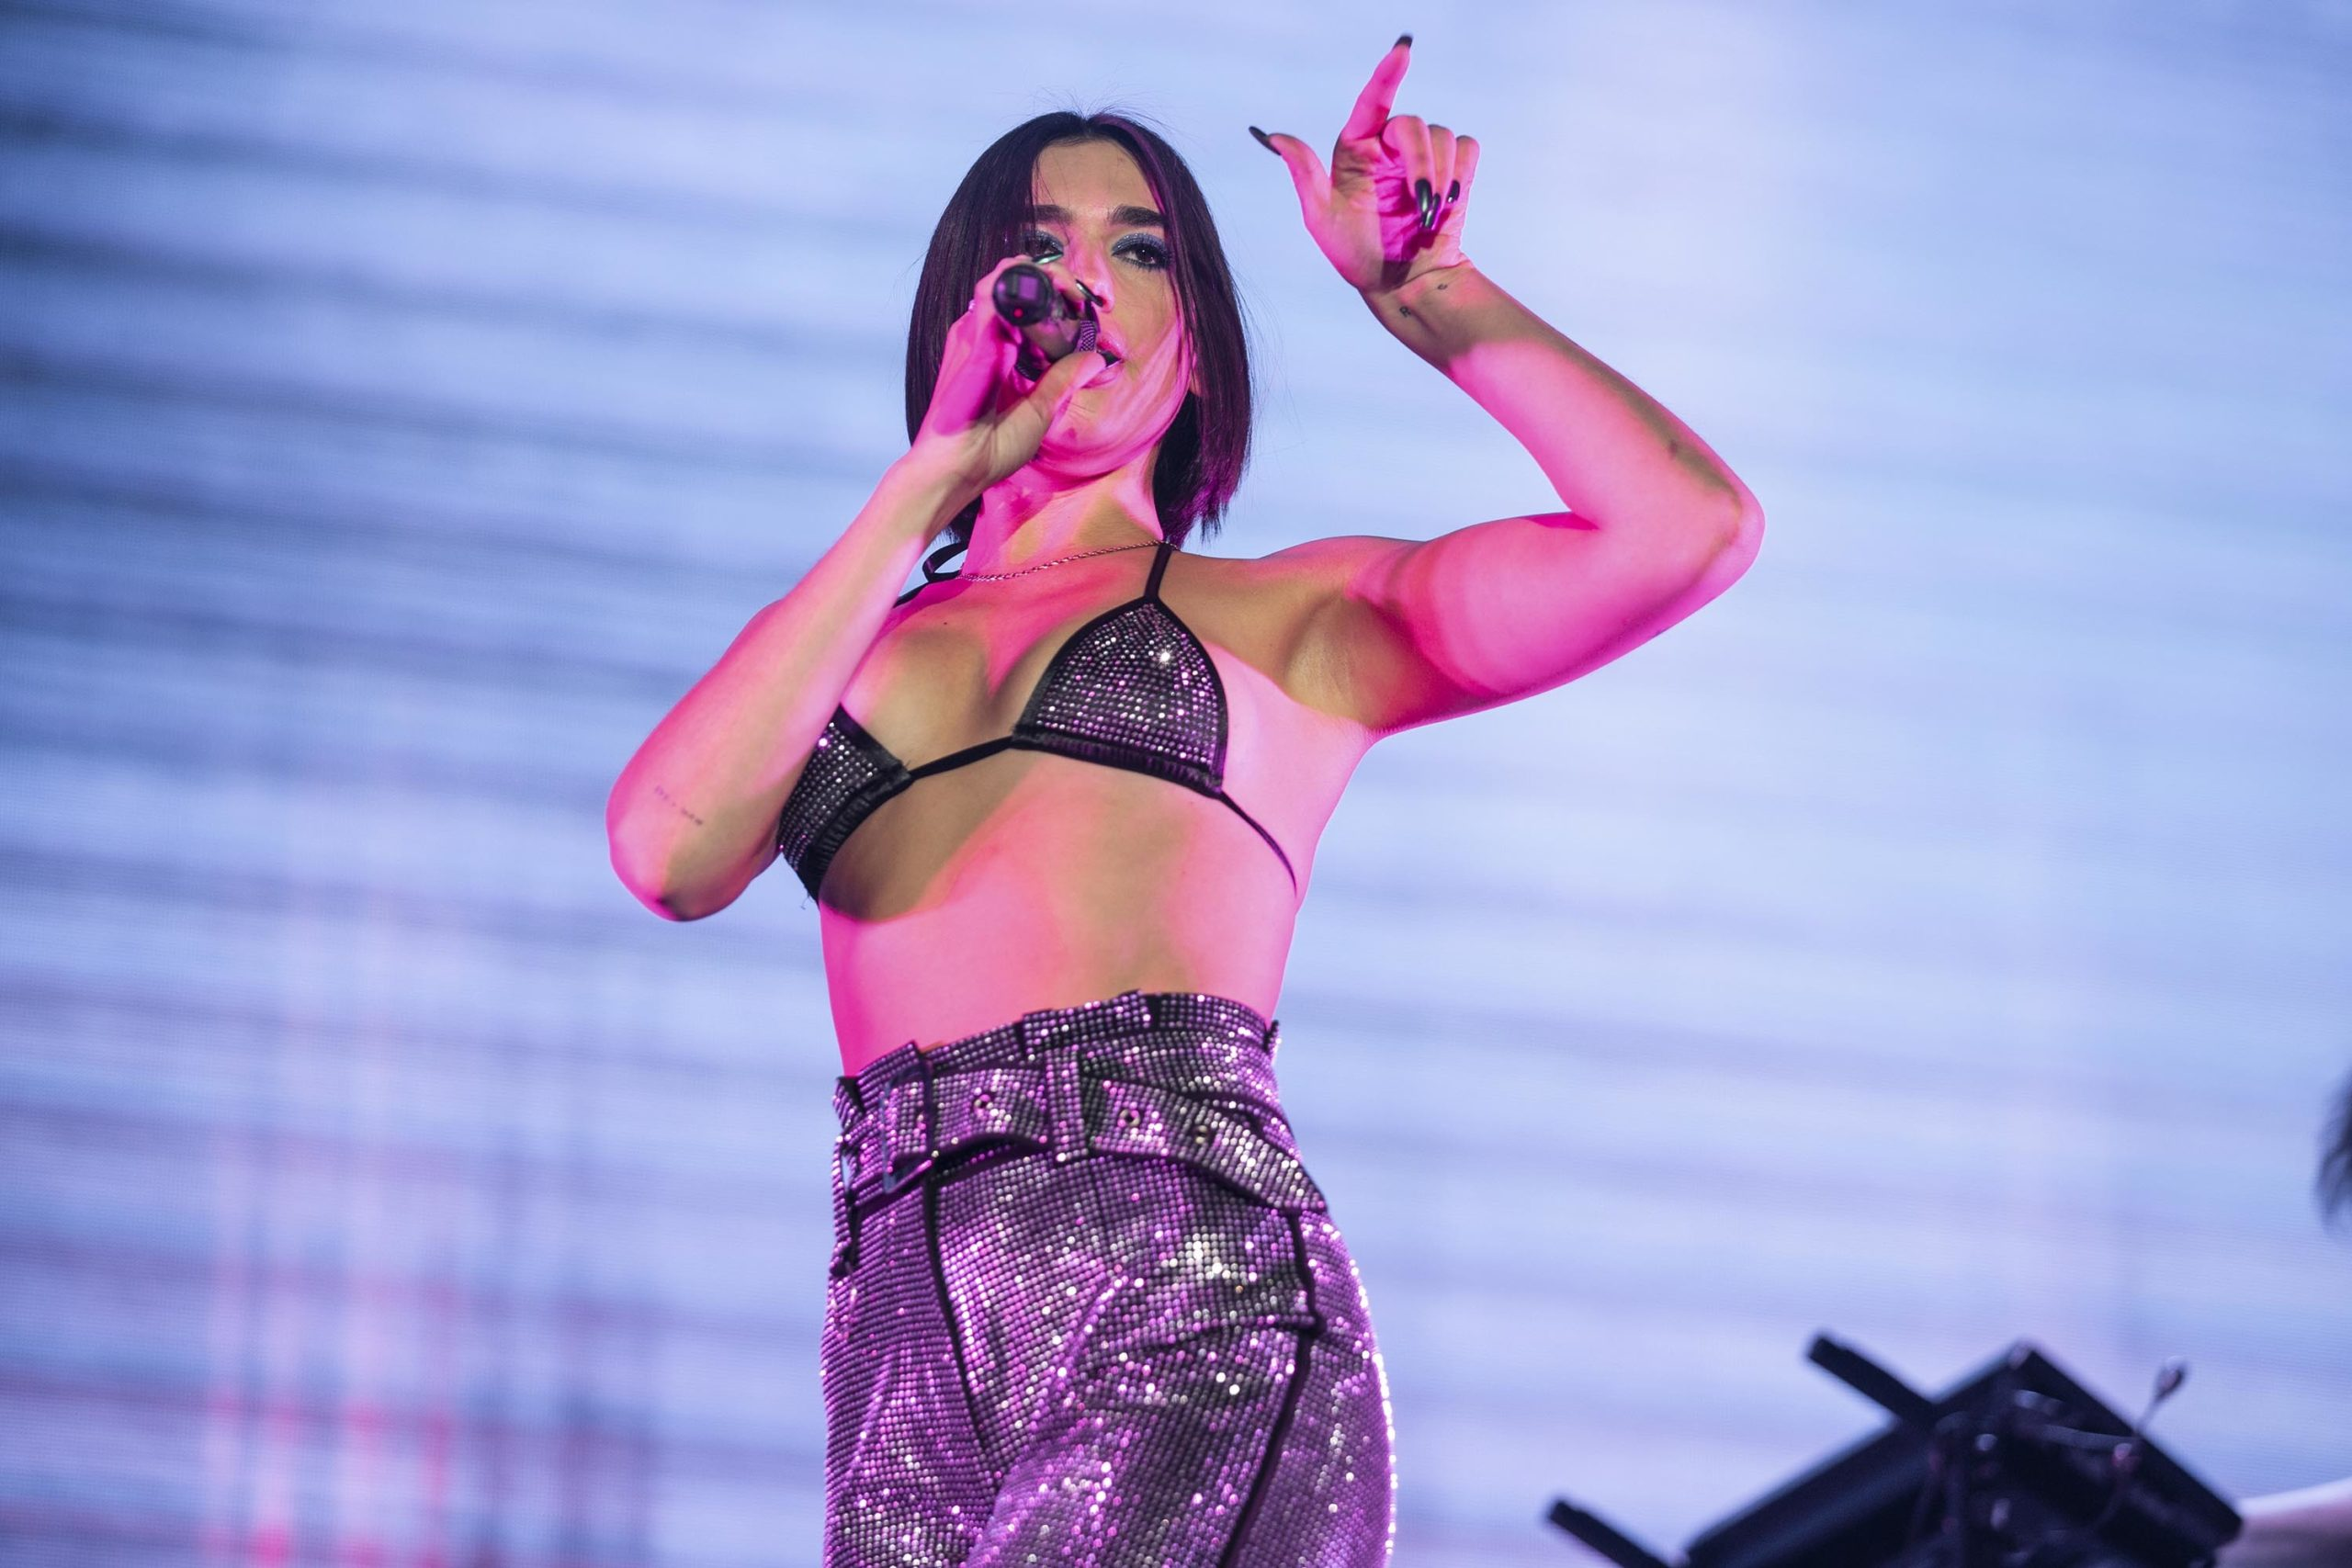 Dua Lipa Singing With Bra scaled - Dua Lipa Net Worth, Pics, Wallpapers, Career and Biography